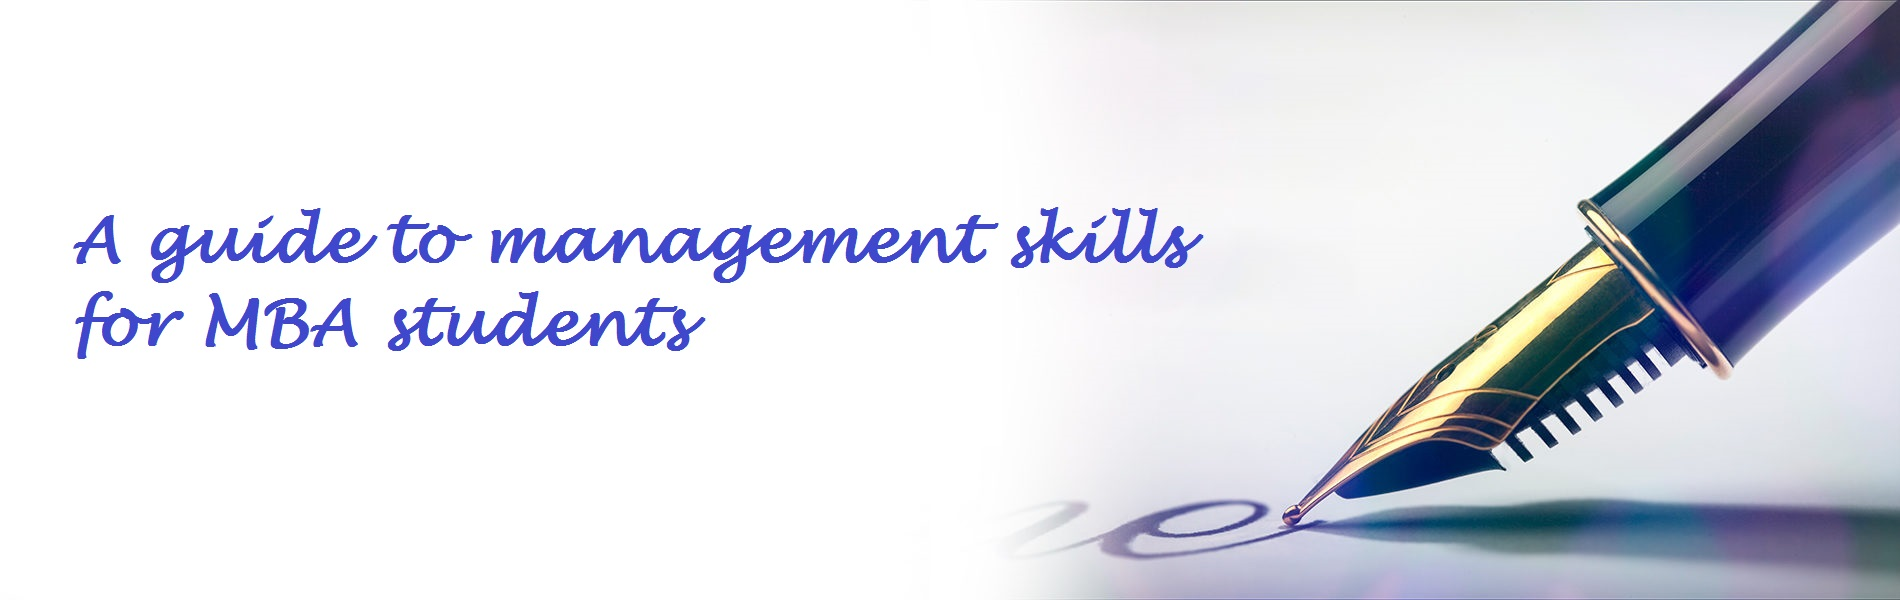 A guide to management skills for MBA students